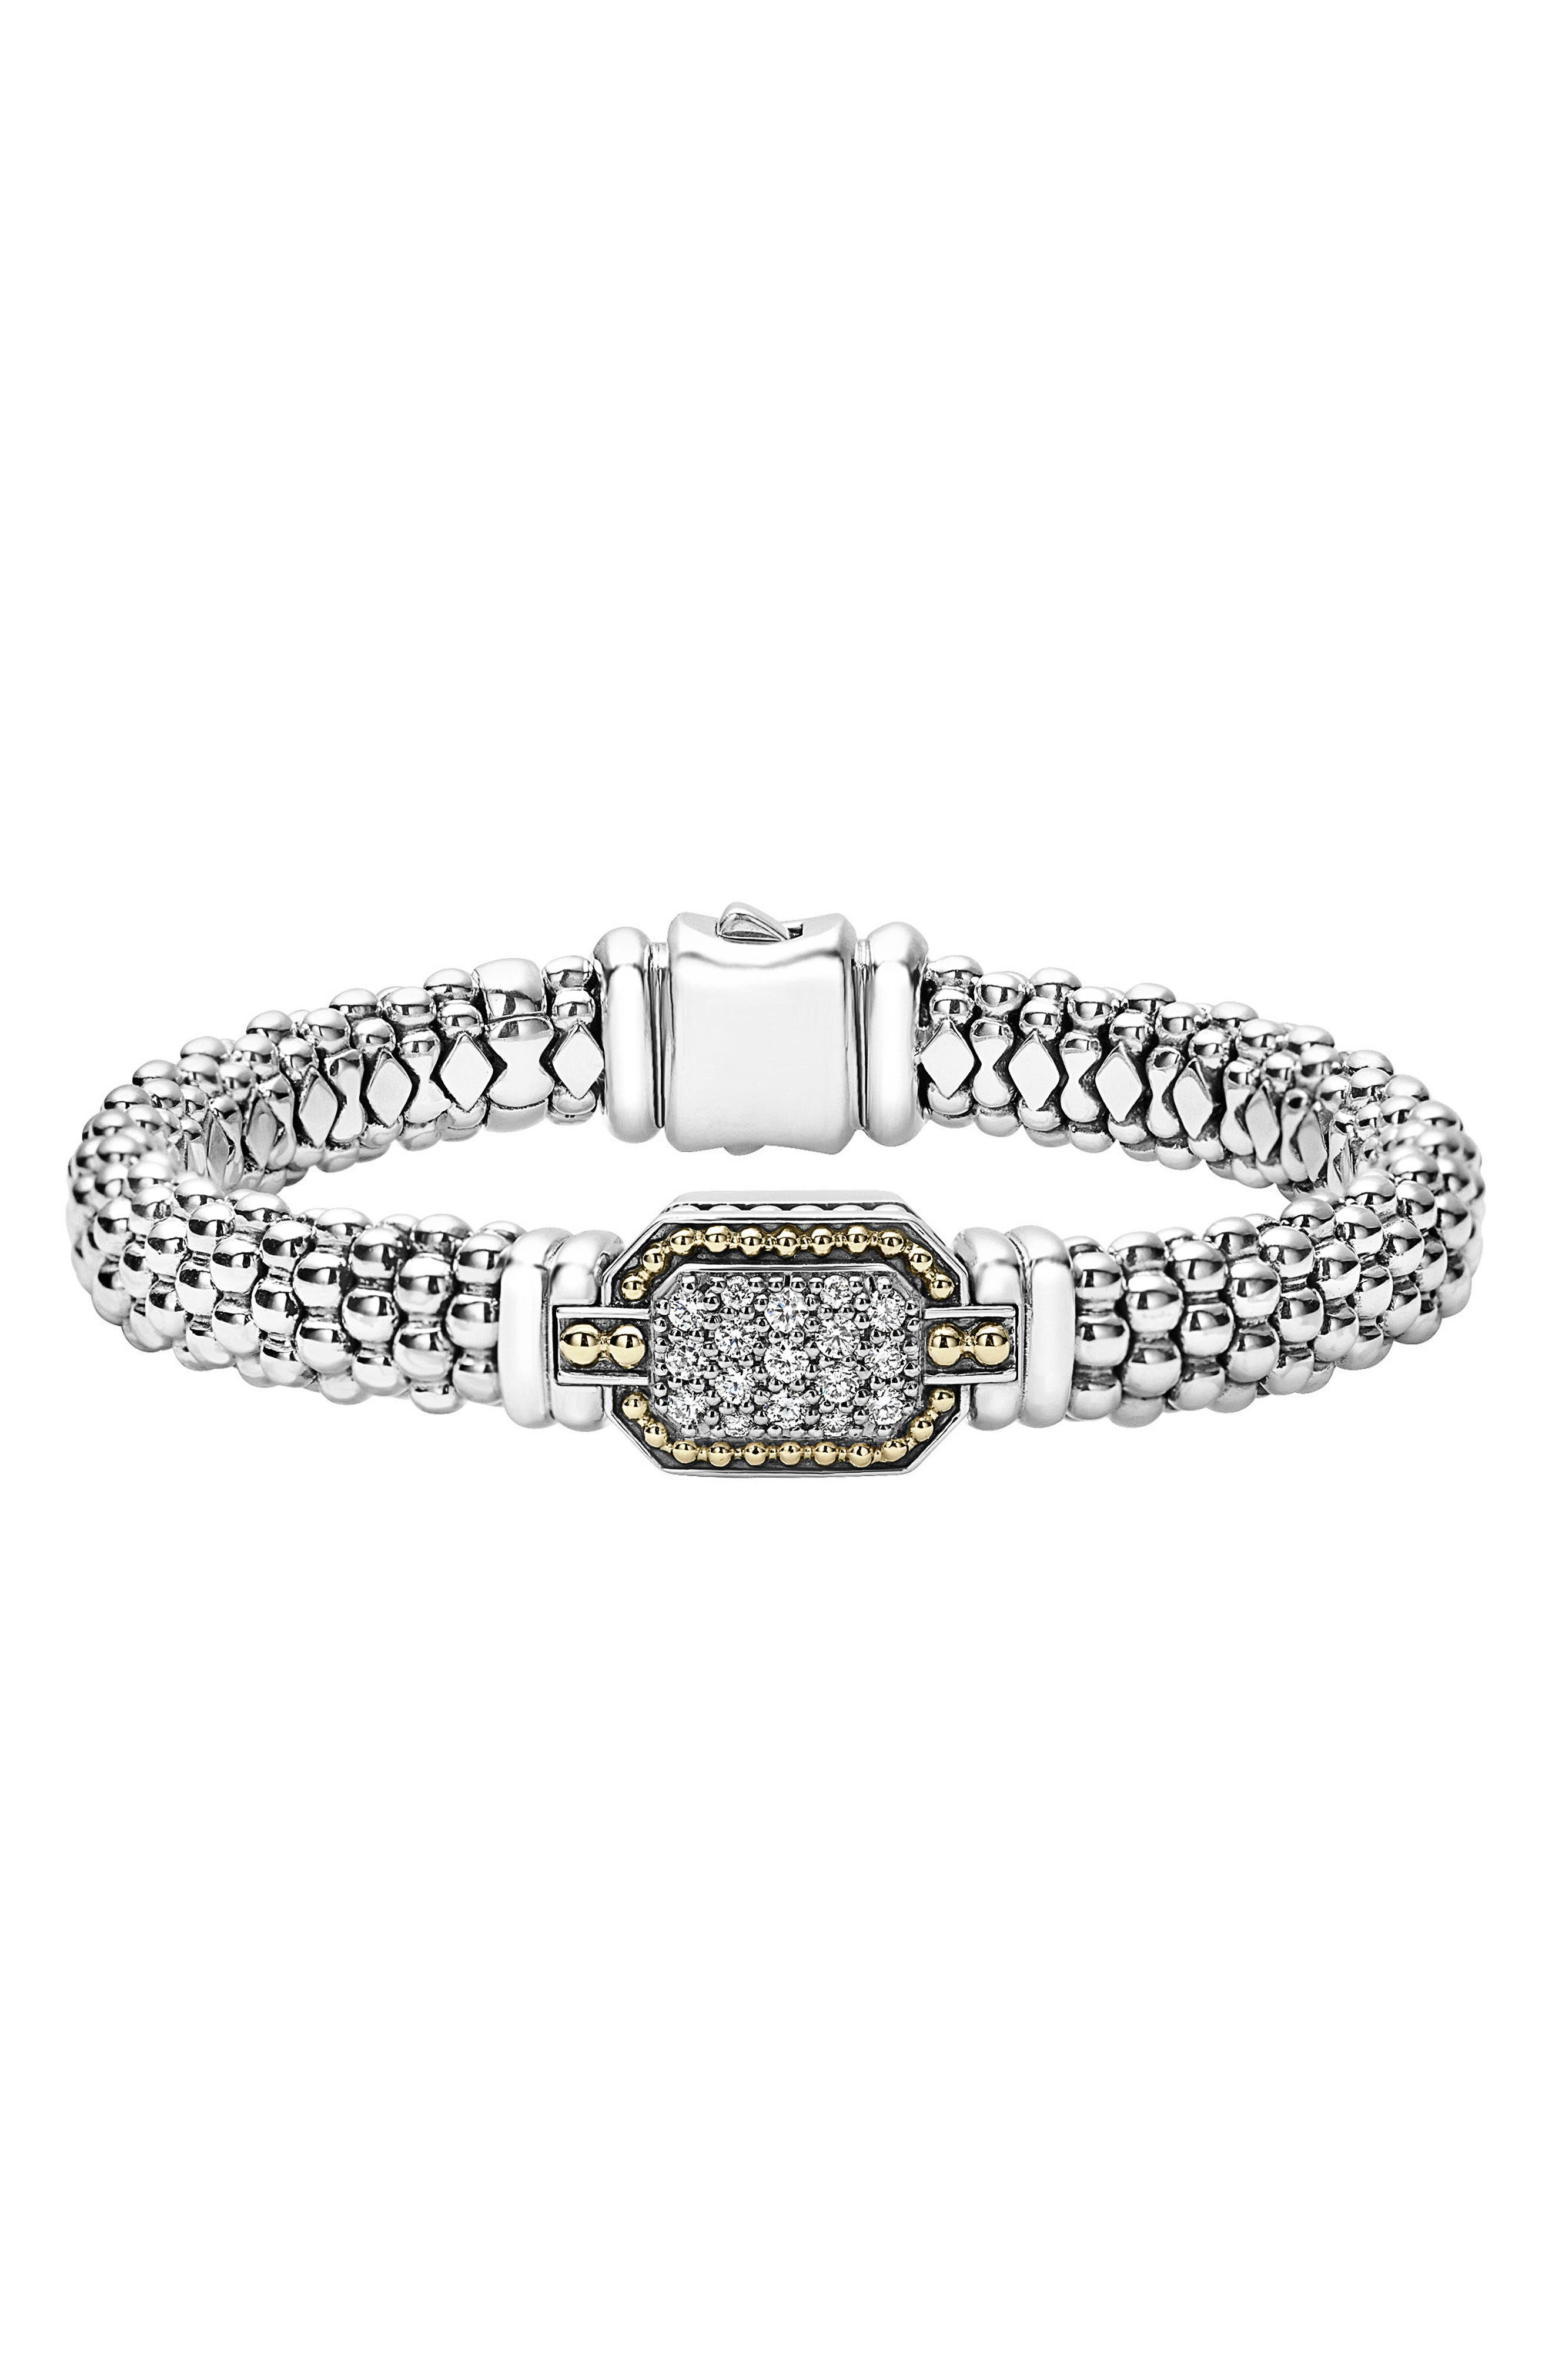 Diamonds & Caviar Large Diamond Bracelet,                             Main thumbnail 1, color,                             040